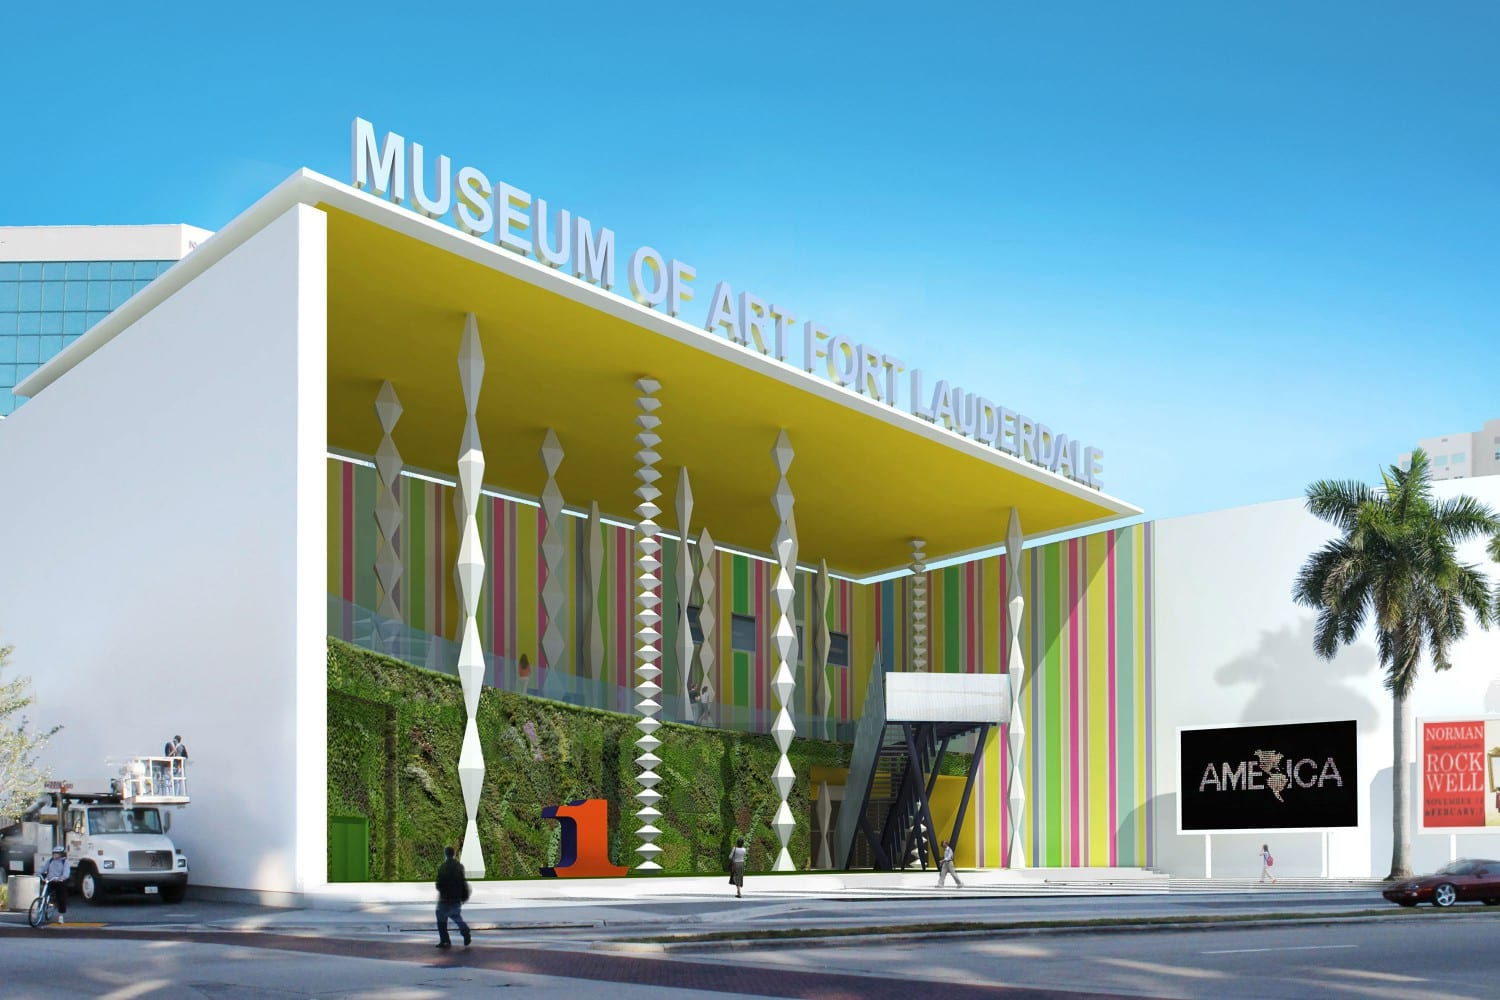 Museum of Art Fort Lauderdale: R & R Studios, Roberto Behar & Rosario Marquardt, Georgy John, MOAFL, Super Porch, Art and achitecture,